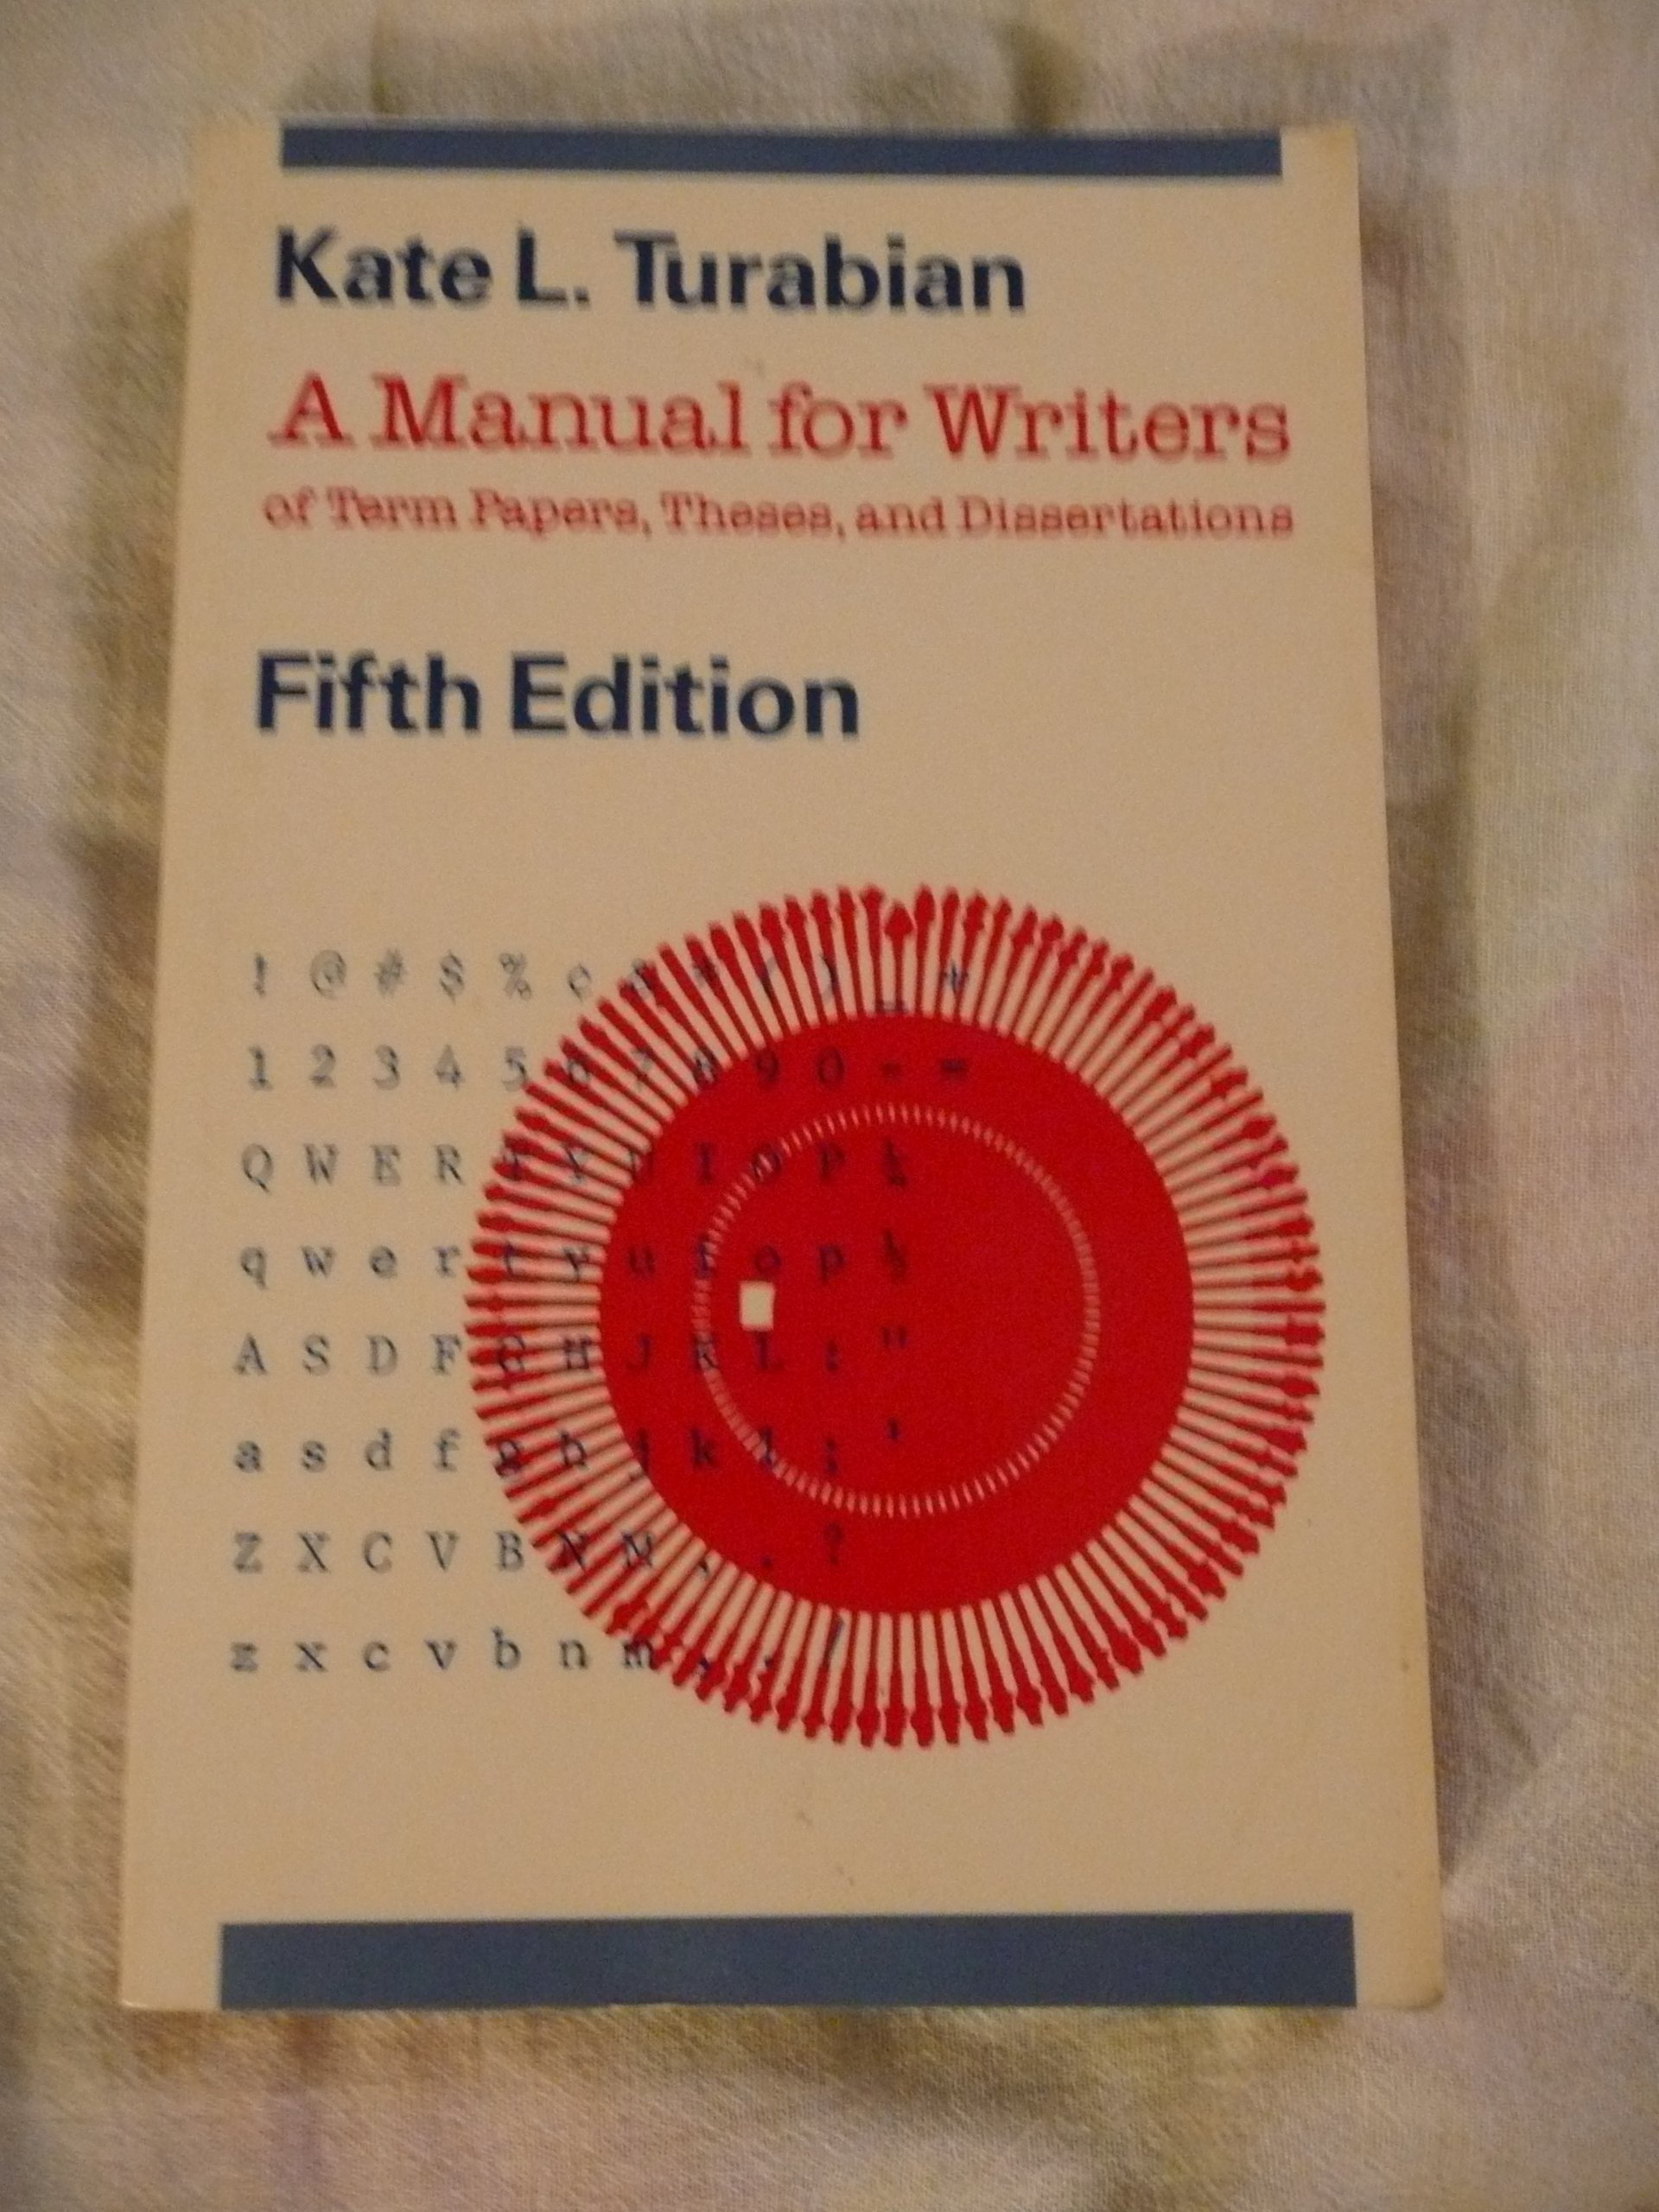 007 91nltv7olql Manual For Writers Of Researchs Theses And Dissertations 8th Imposing Research Papers 13 Full